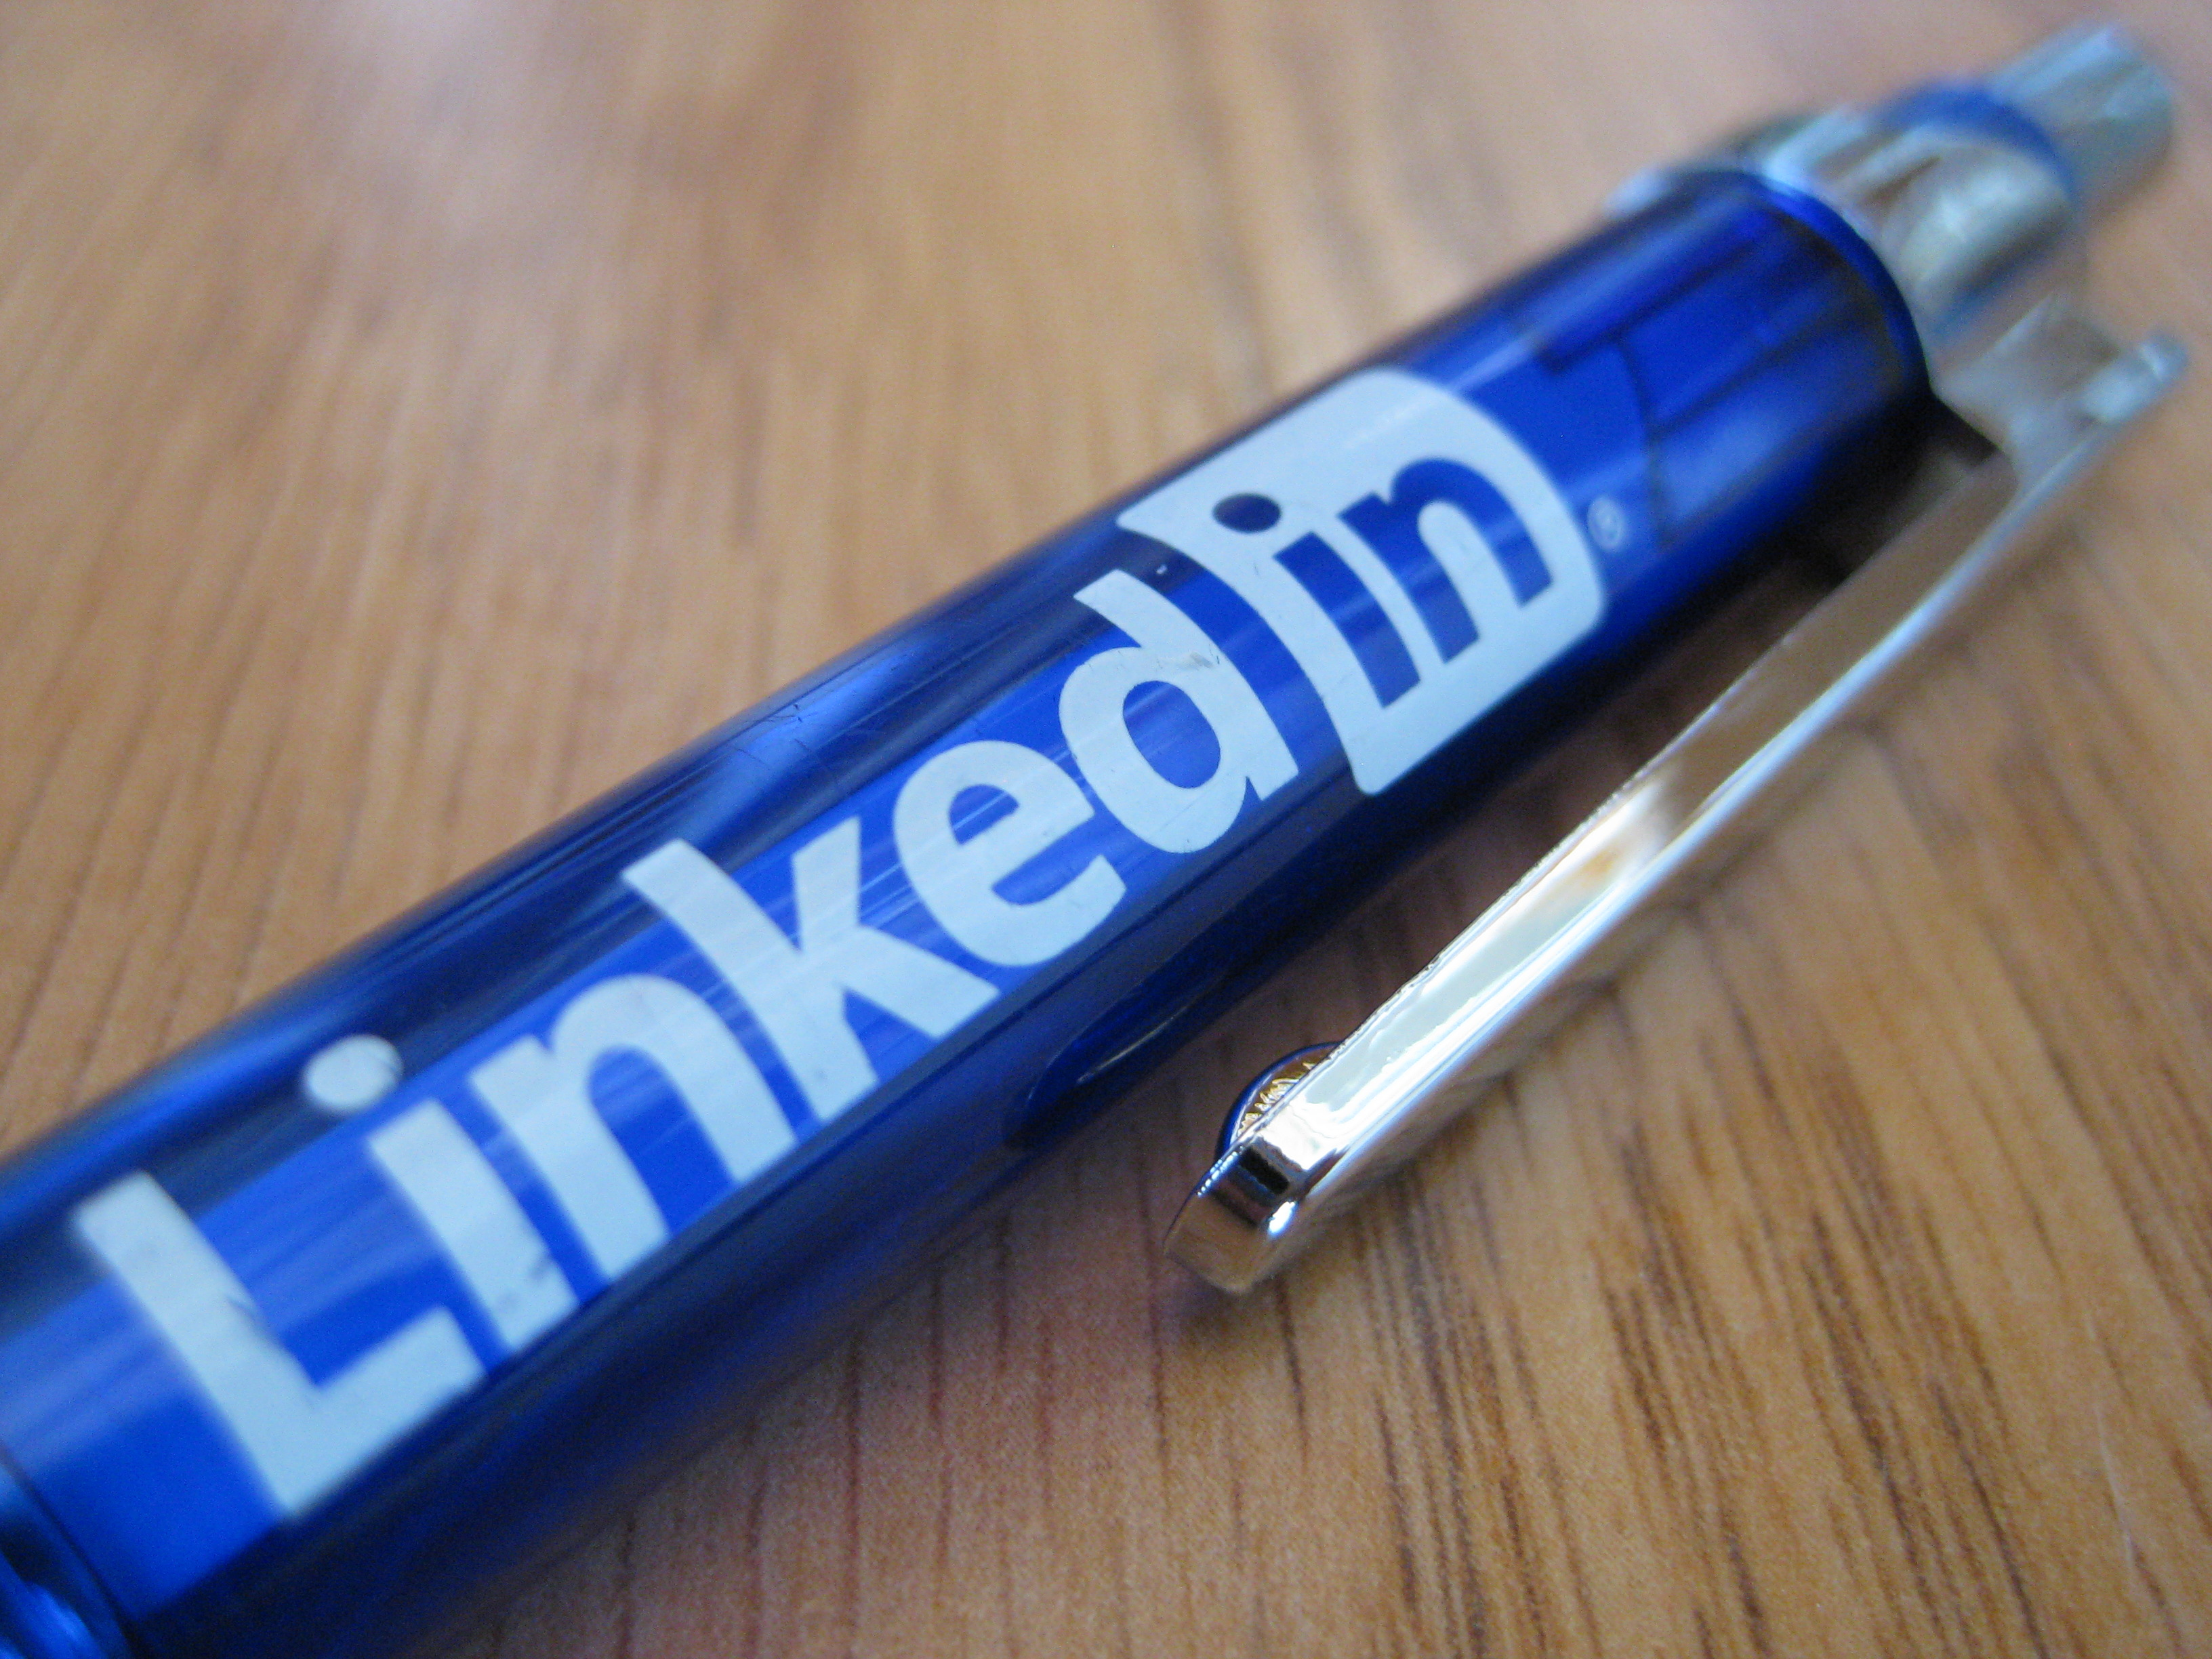 LinkedIn To Allow All Users to Publish Content